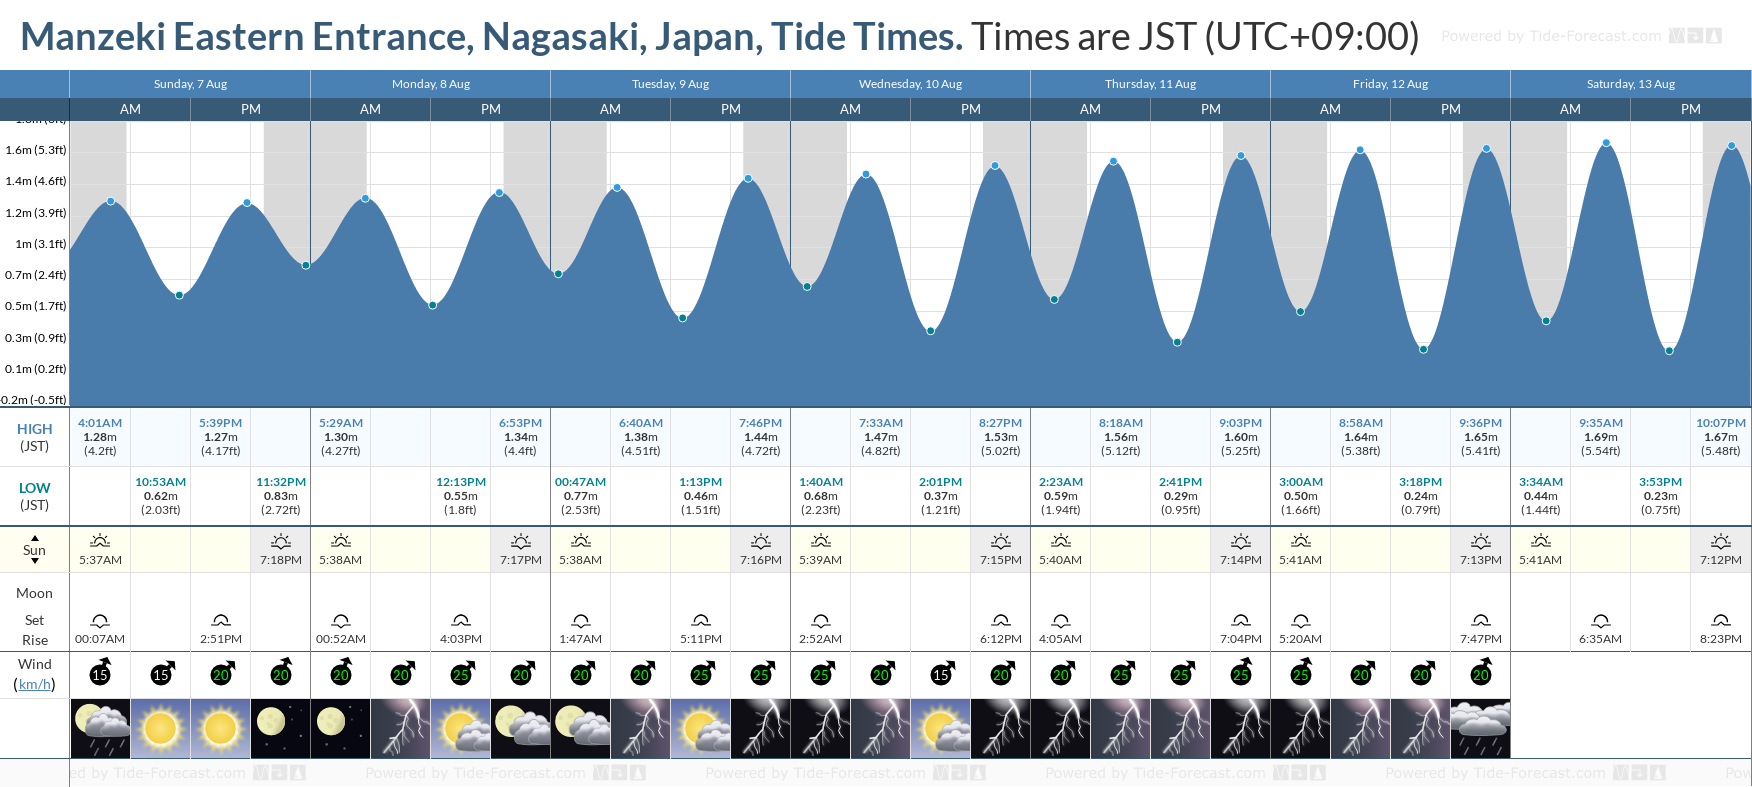 Manzeki Eastern Entrance, Nagasaki, Japan Tide Chart including high and low tide tide times for the next 7 days